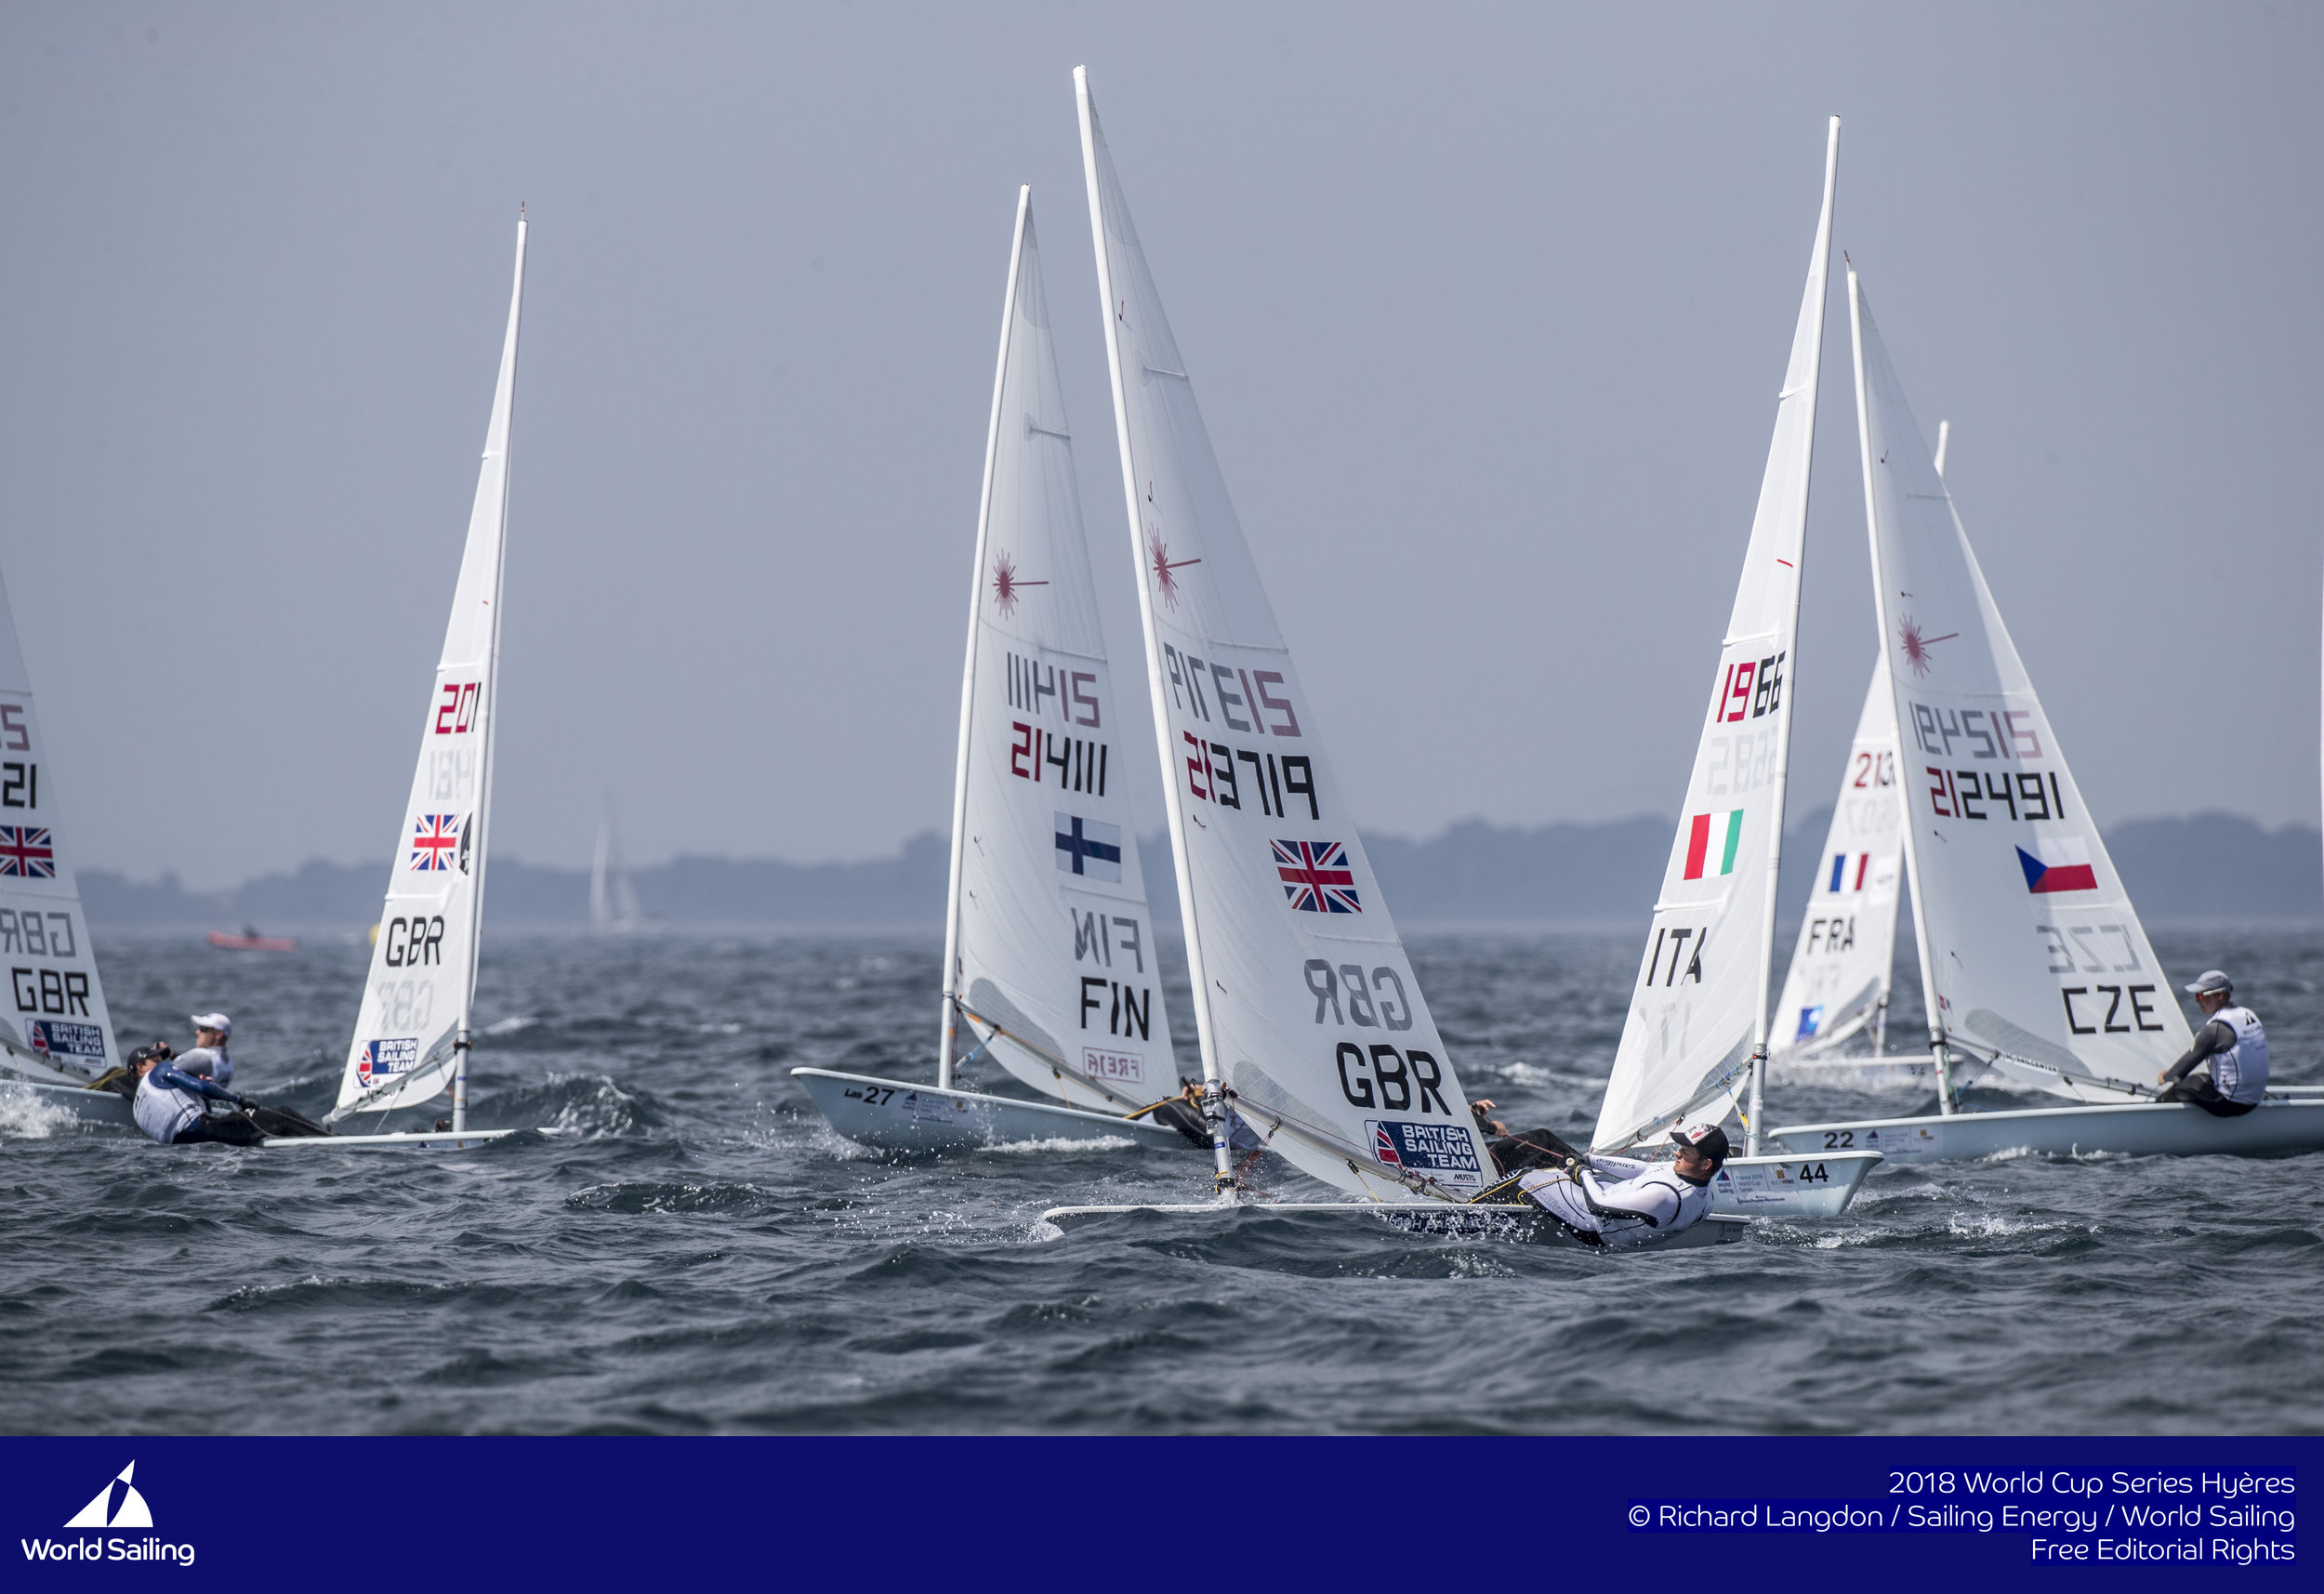 Racing started in some lovely 7-13 knot winds with sizeable sea state.